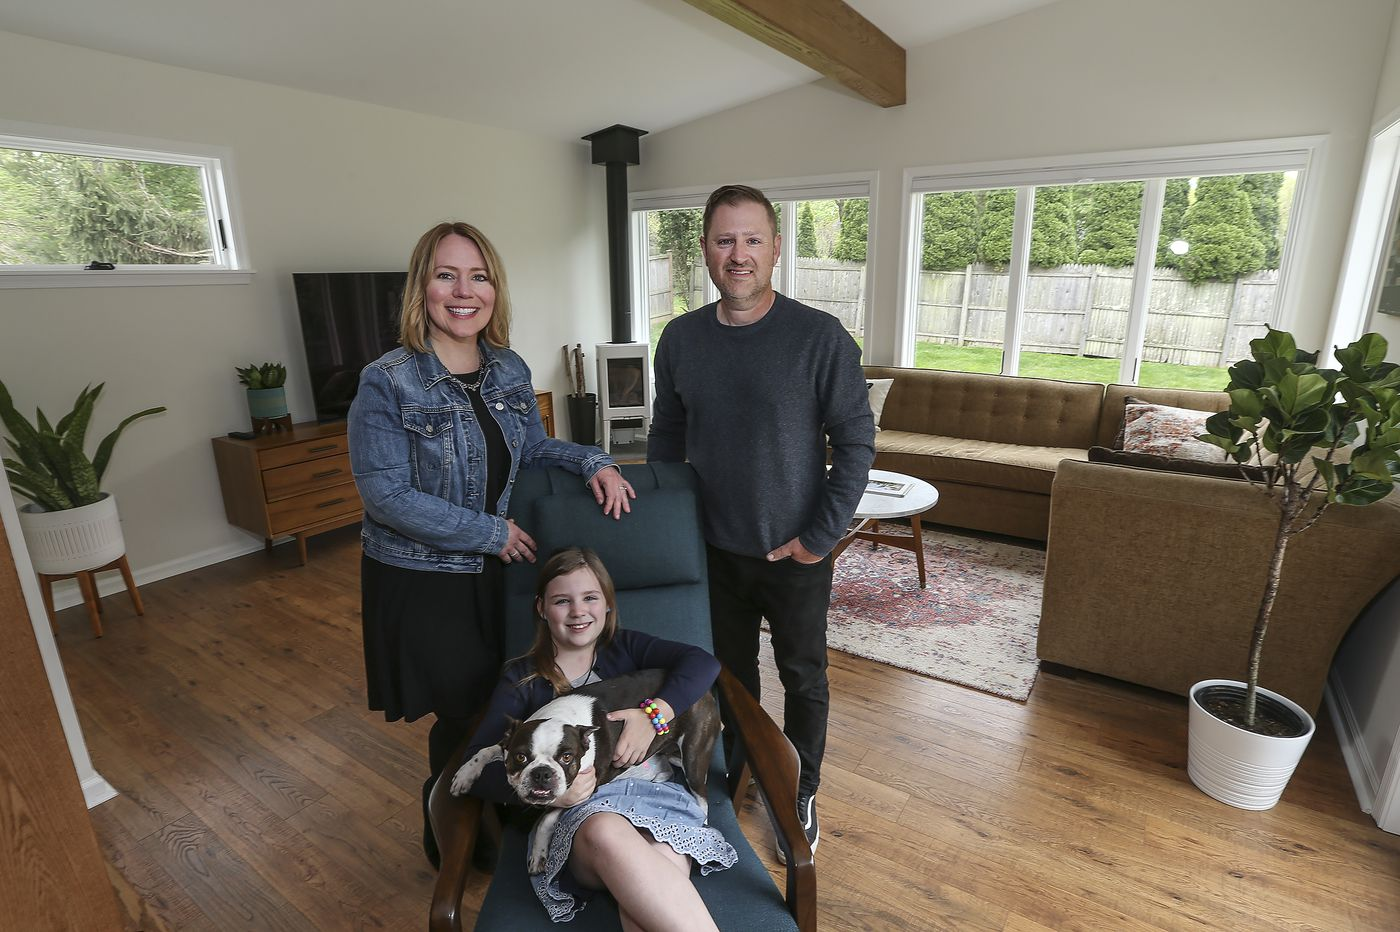 For this family, staying put and adding on made more sense than moving